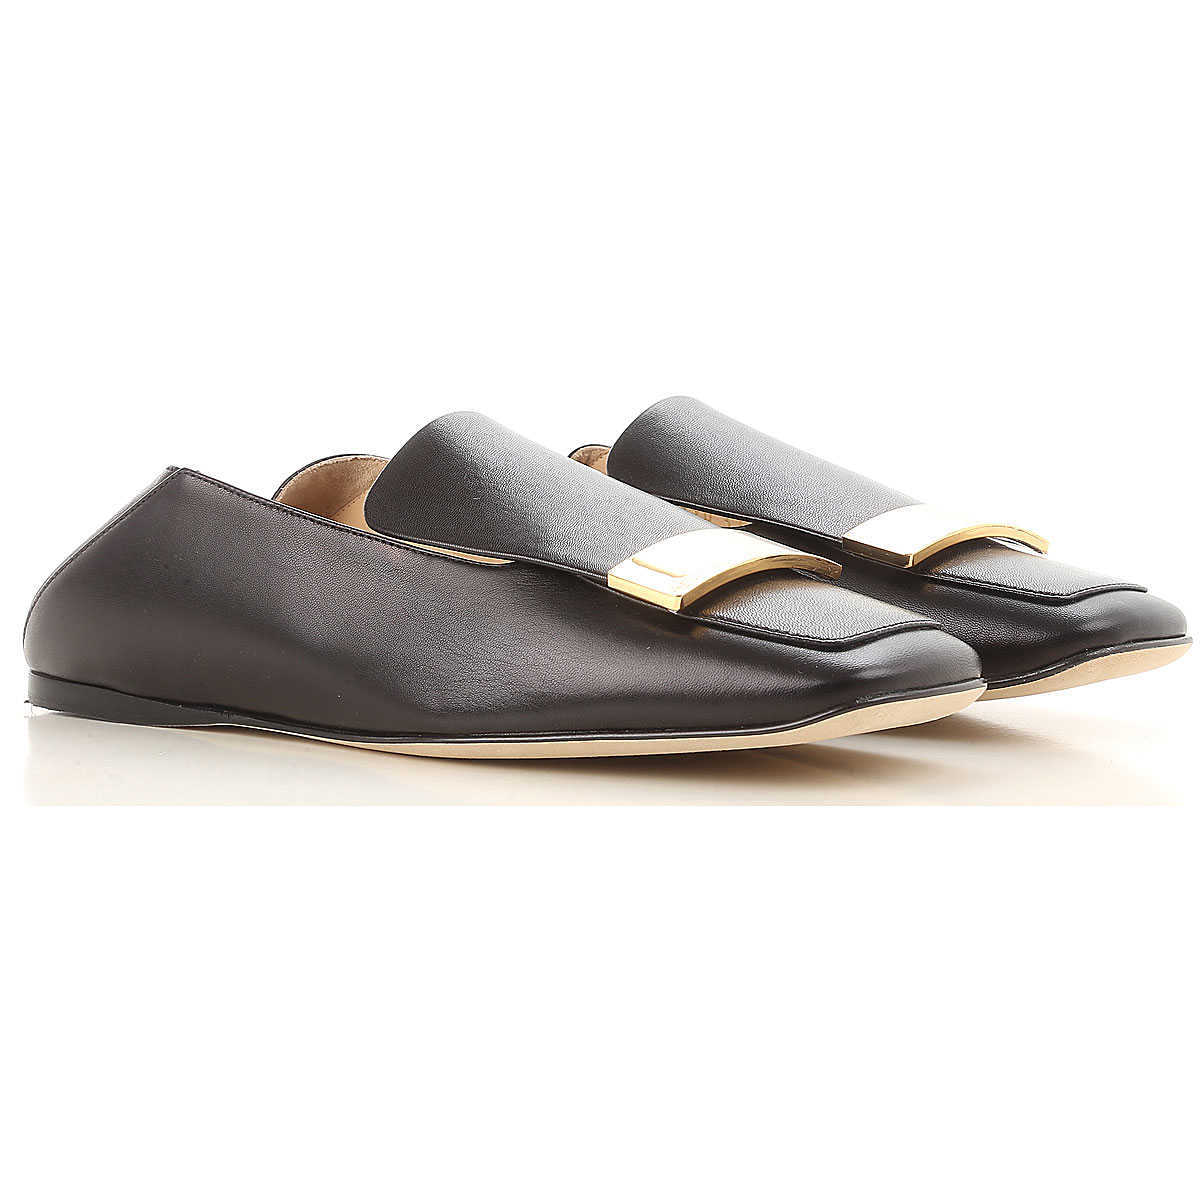 Sergio Rossi Loafers for Women Black Canada - GOOFASH - Womens FLAT SHOES